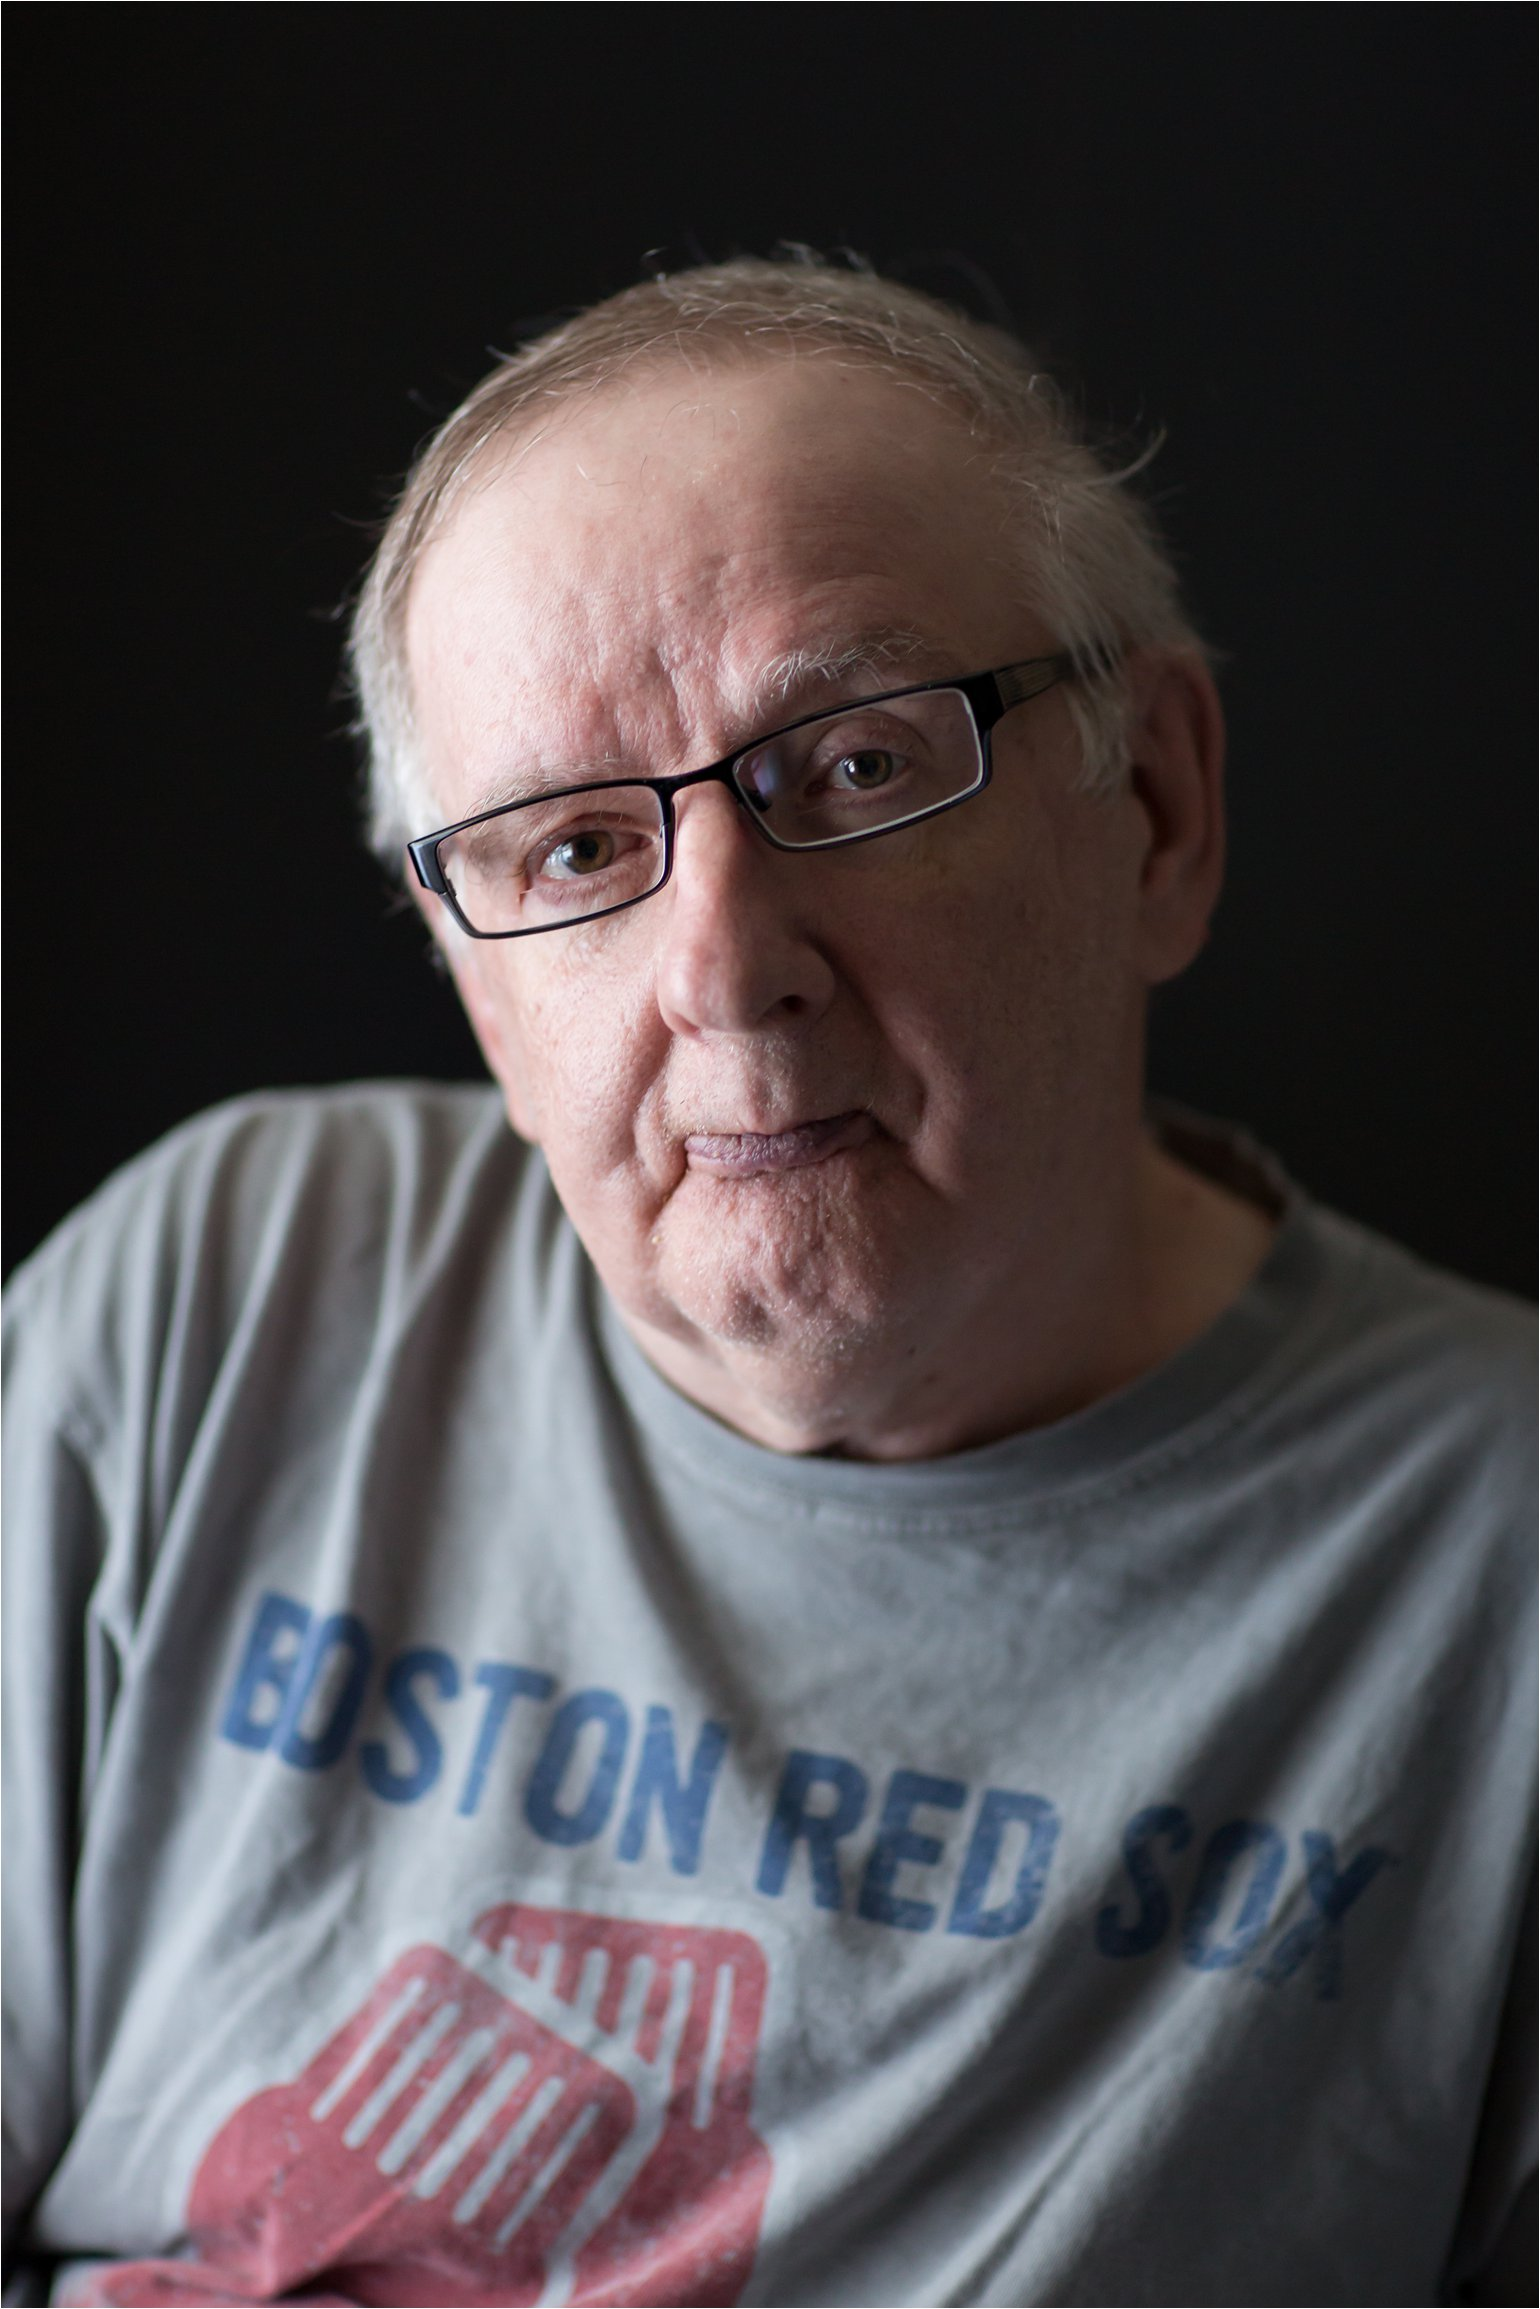 Portrait of Man Wearing Red Sox Shirt (C) Maundy Mitchell